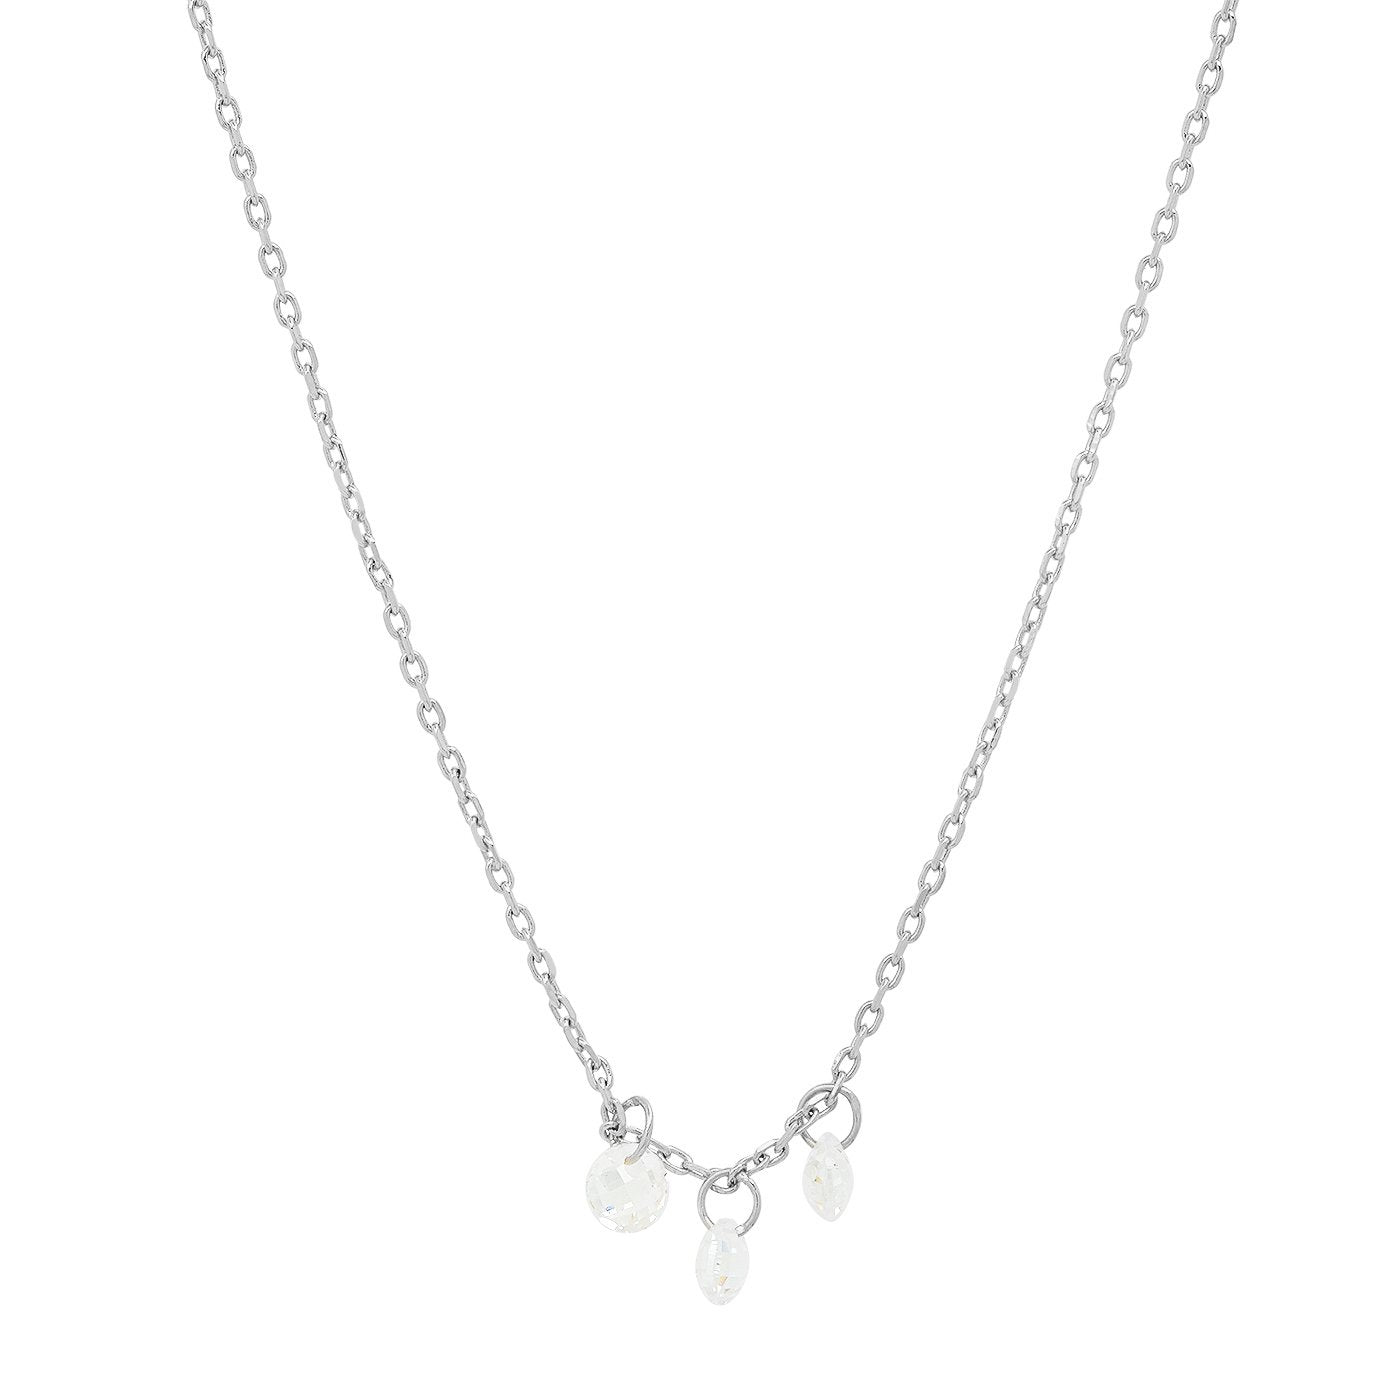 Tai - DELICATE CHAIN NECKLACE WITH THREE FLOATING STONES (Silver)